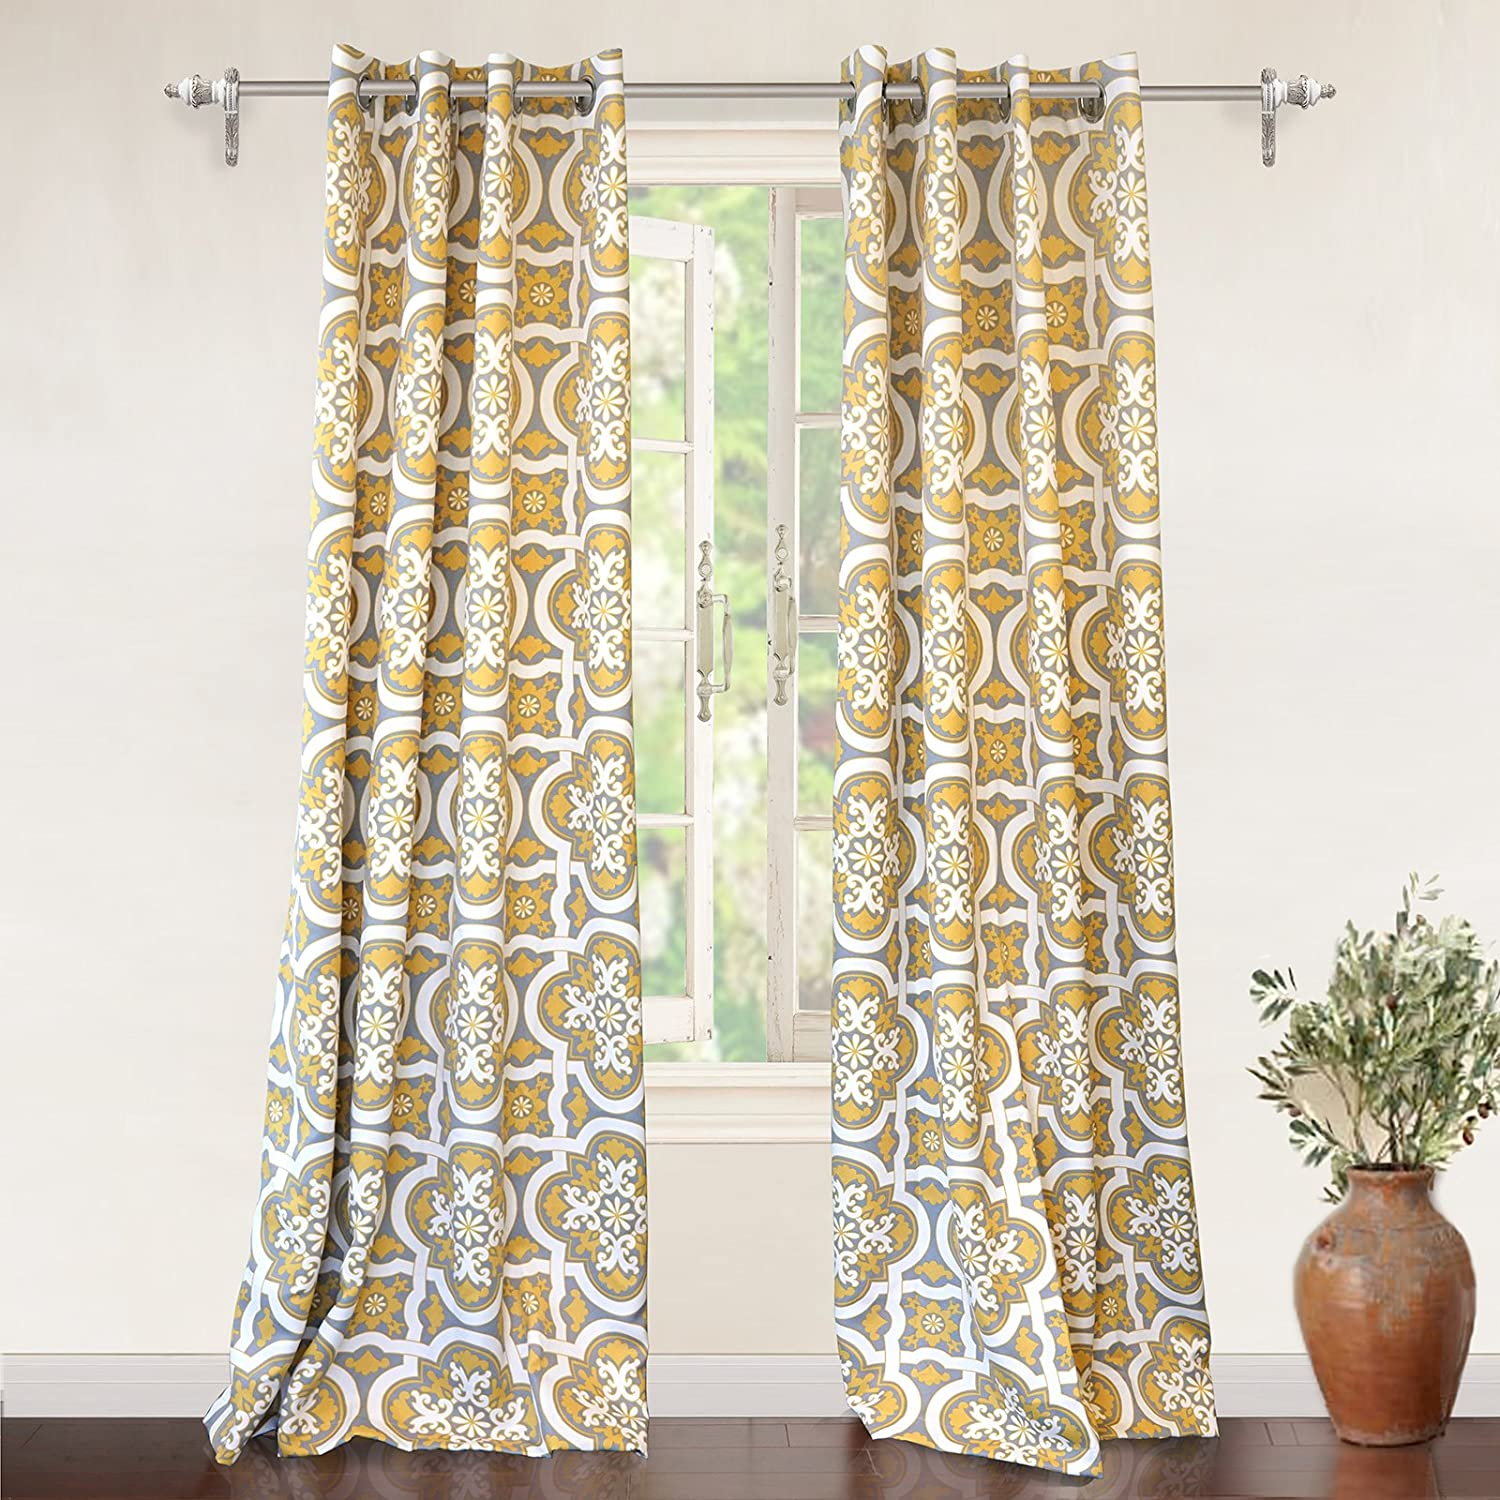 DriftAway Drift Away Floral Trellis Room Darkening Grommet Unlined Window Curtains, Set of Two Panels Yellow